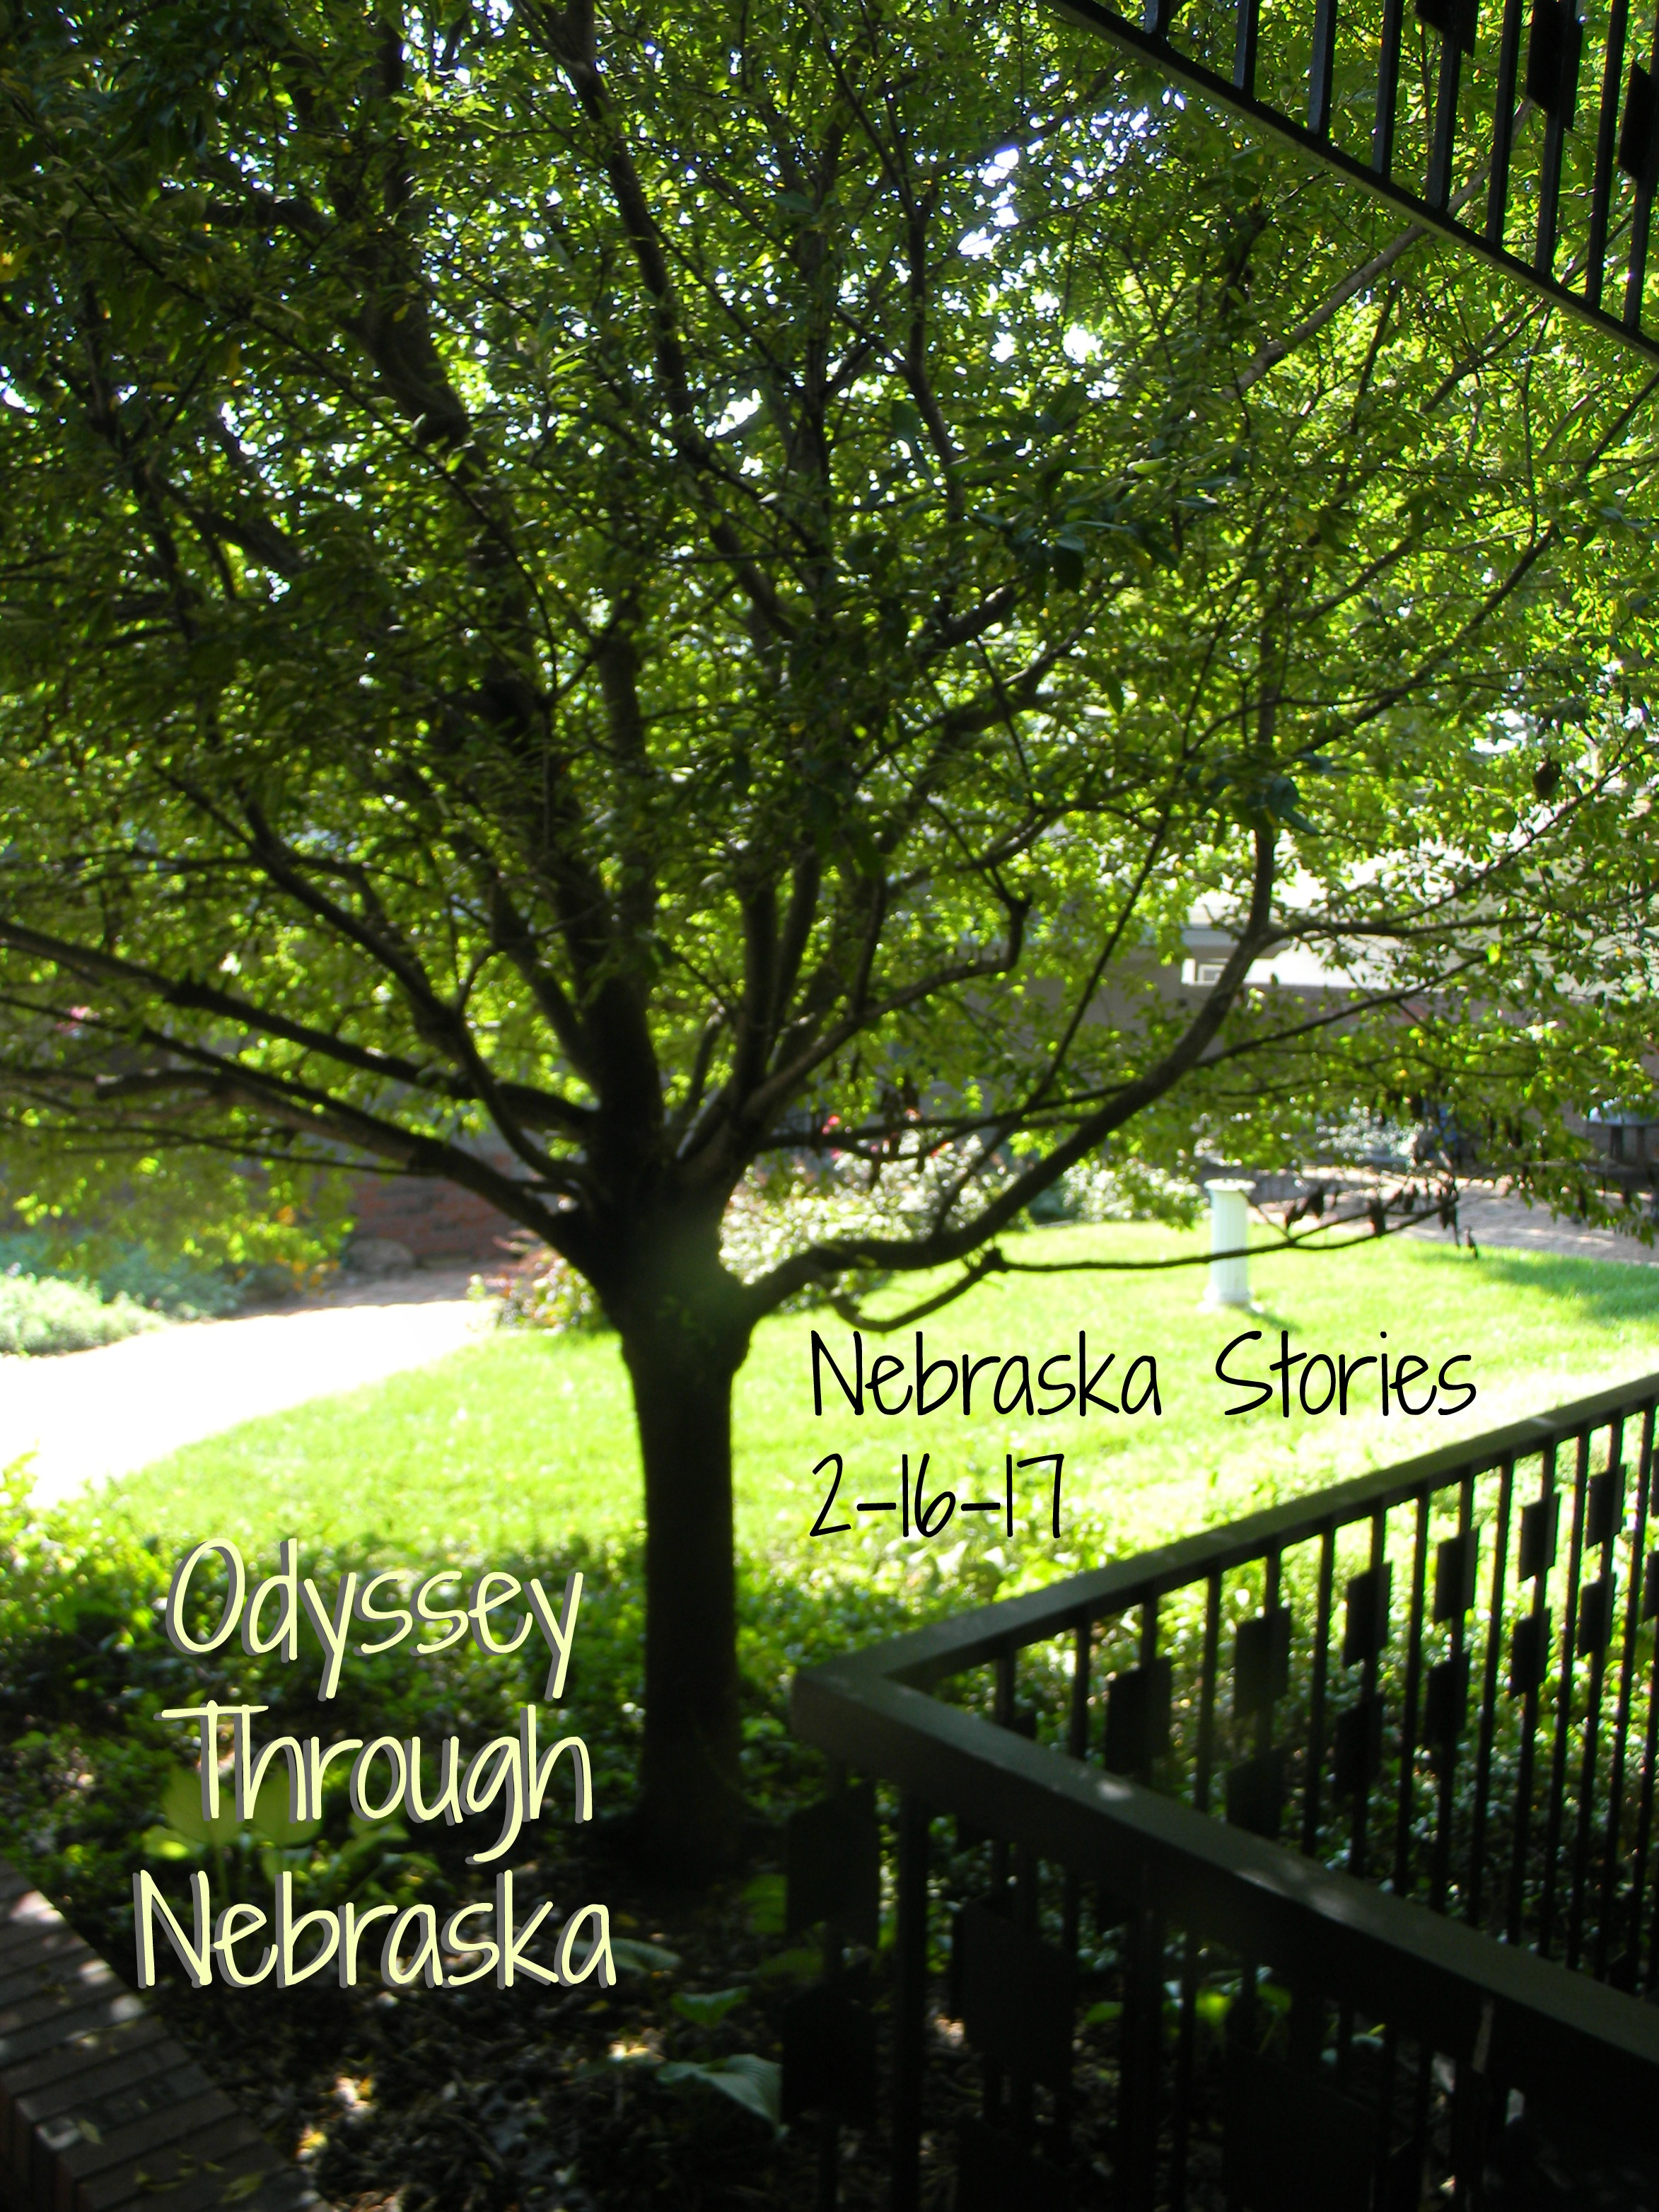 Odyssey Through Nebraska Nebraska Stories 806